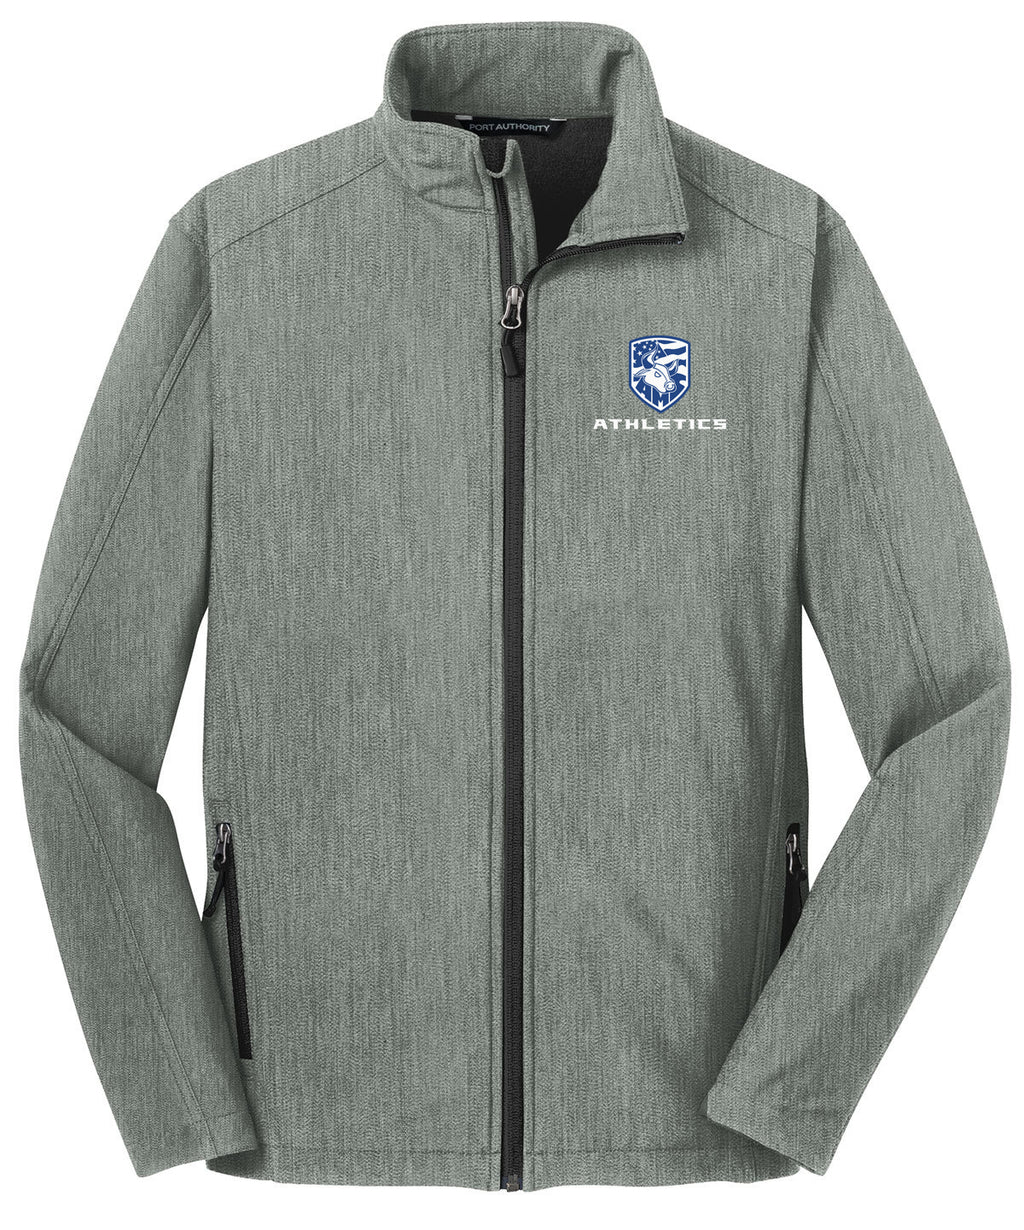 Accompsett Middle School Men's Light Grey Soft Shell Jacket